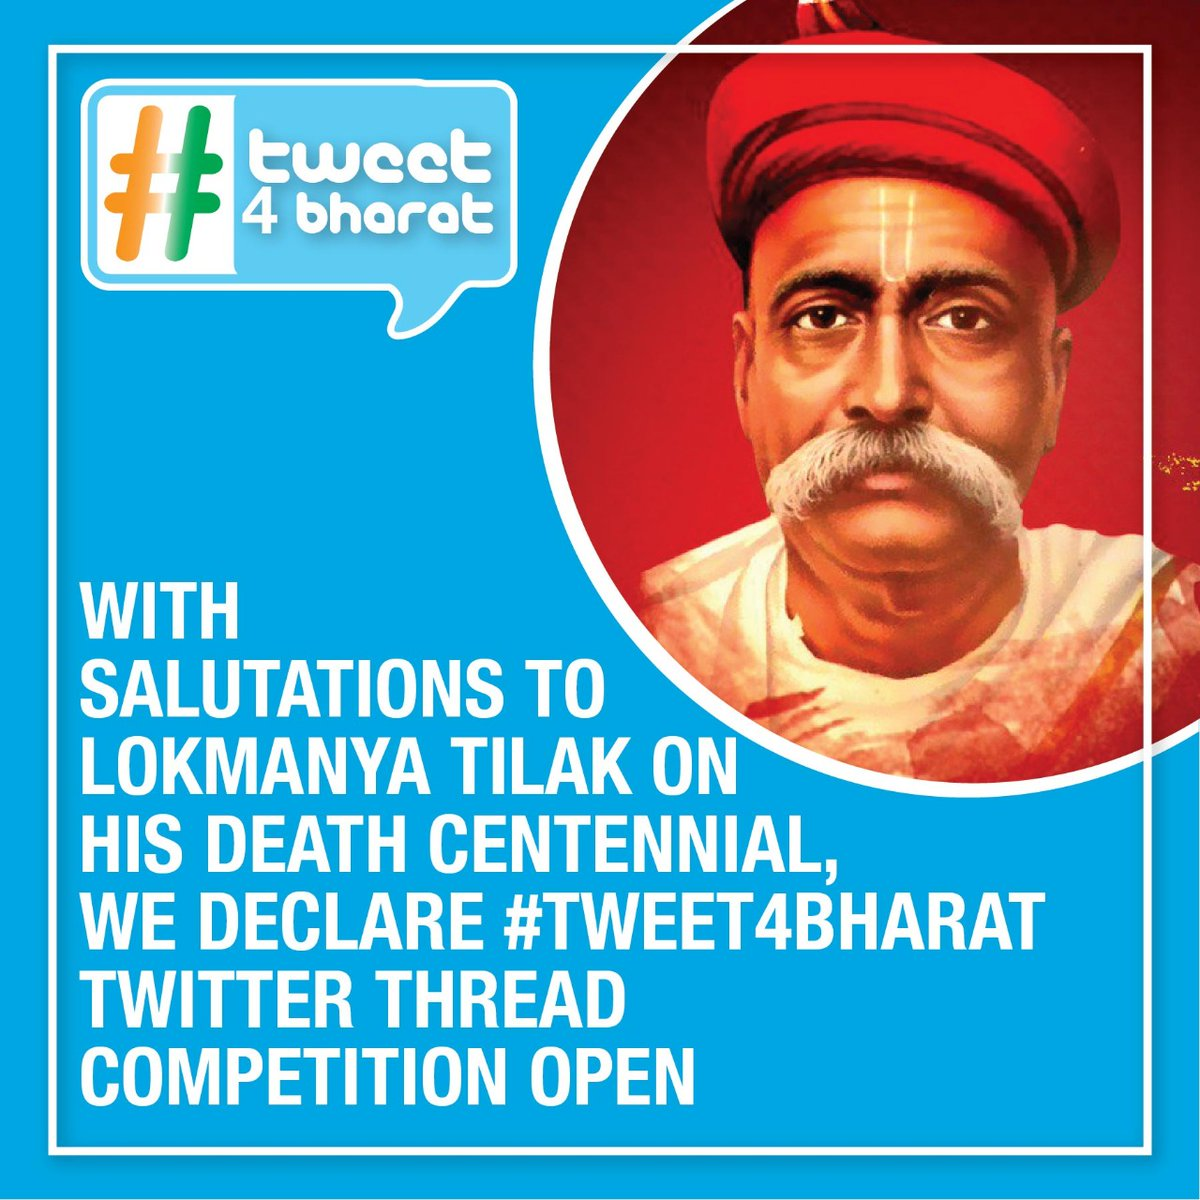 Do you like writing threads on @Twitter? Do participate in Indias first Twitter Thread competition #Tweet4Bharat and win attractive prizes! Encouraging Positivity on @TwitterIndia